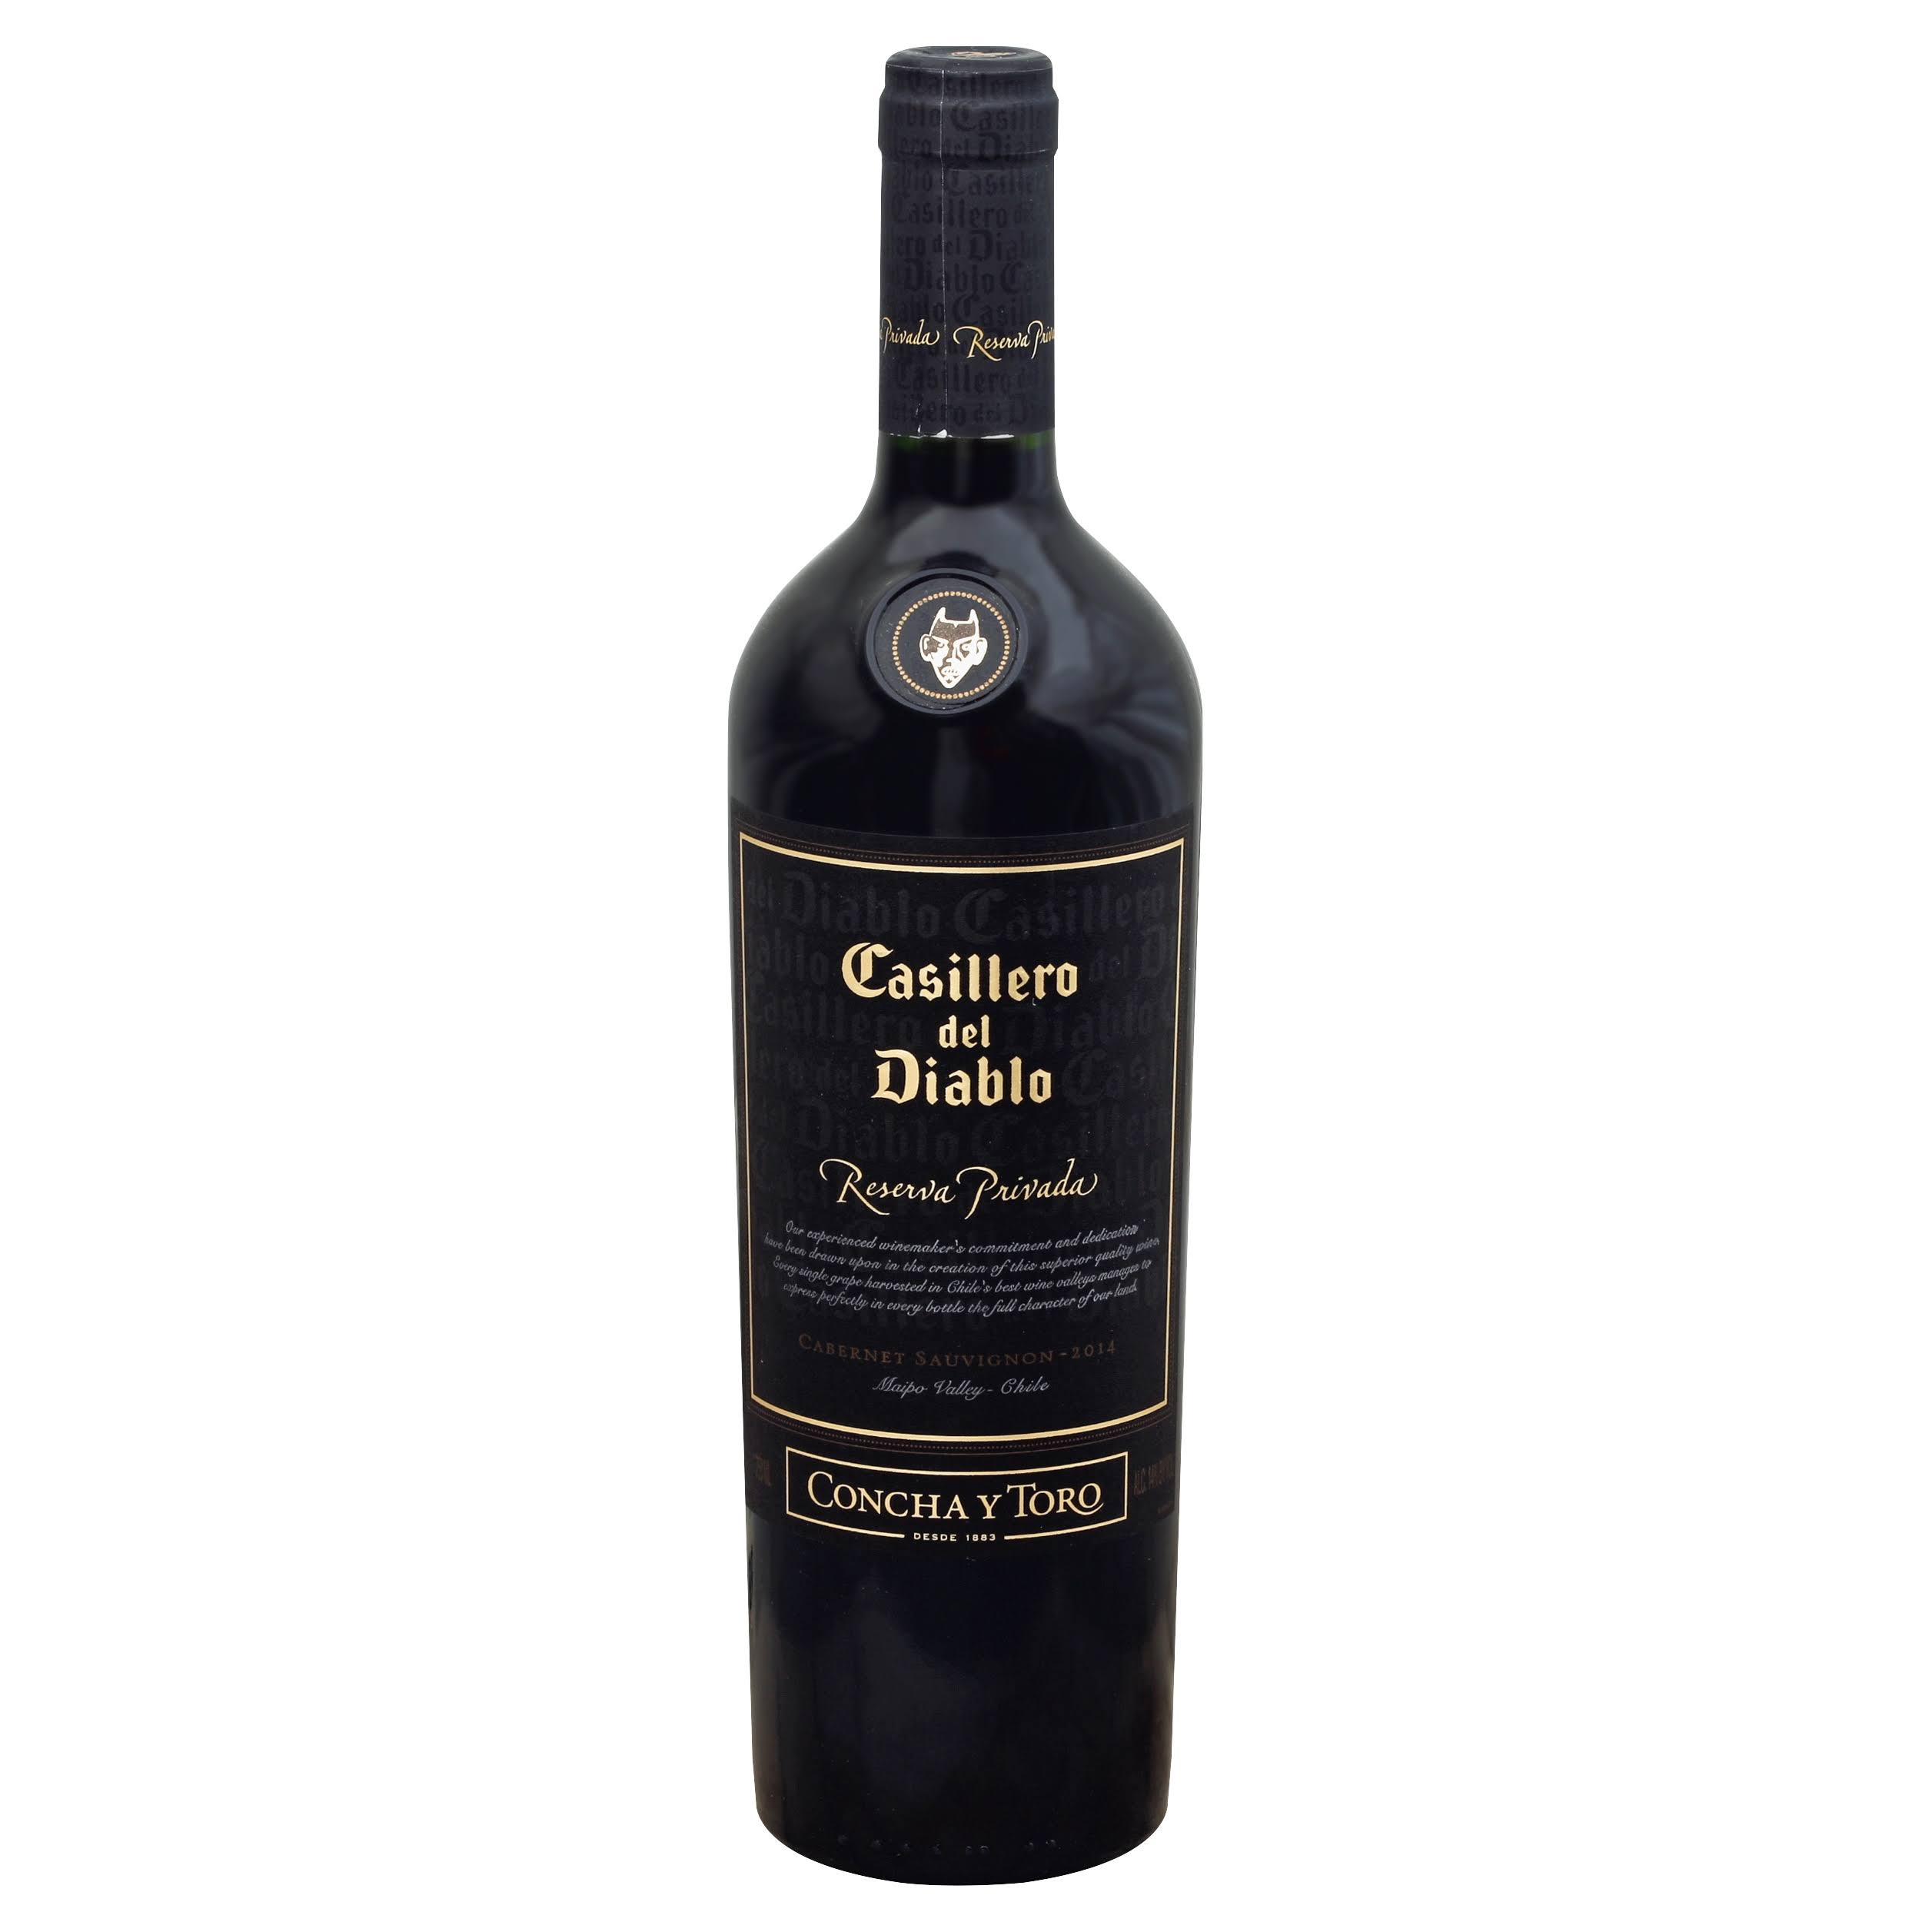 Concha Y Toro Casillero Del Diablo Reserva Privada, South America (Vintage Varies) - 750 ml bottle